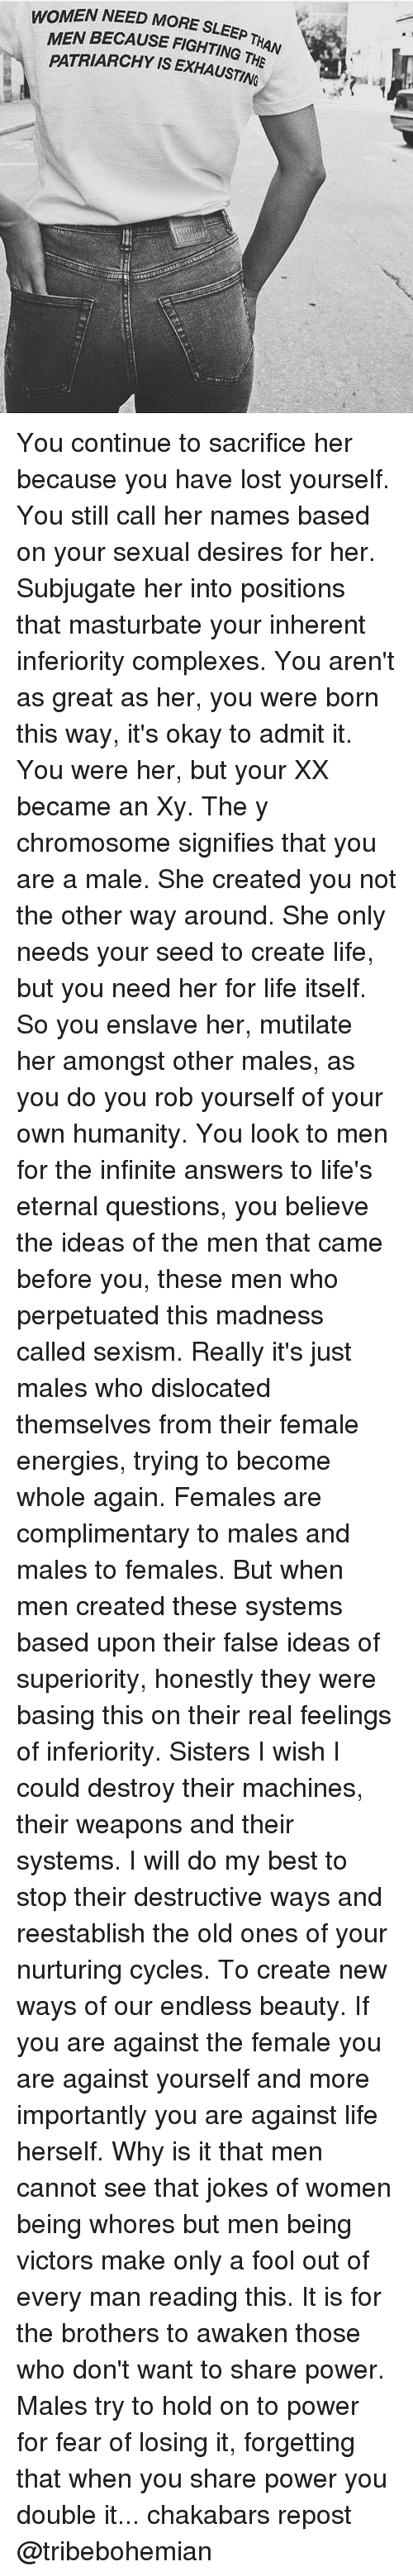 Memes, 🤖, and Infinite: WOMEN NEED MORE SLEEP  E SLEEP THAN  MEN BECAUSE FIGHTING T  ING THE  H  PATRIARCHY IS EXHAUSTING ari4P You continue to sacrifice her because you have lost yourself. You still call her names based on your sexual desires for her. Subjugate her into positions that masturbate your inherent inferiority complexes. You aren't as great as her, you were born this way, it's okay to admit it. You were her, but your XX became an Xy. The y chromosome signifies that you are a male. She created you not the other way around. She only needs your seed to create life, but you need her for life itself. So you enslave her, mutilate her amongst other males, as you do you rob yourself of your own humanity. You look to men for the infinite answers to life's eternal questions, you believe the ideas of the men that came before you, these men who perpetuated this madness called sexism. Really it's just males who dislocated themselves from their female energies, trying to become whole again. Females are complimentary to males and males to females. But when men created these systems based upon their false ideas of superiority, honestly they were basing this on their real feelings of inferiority. Sisters I wish I could destroy their machines, their weapons and their systems. I will do my best to stop their destructive ways and reestablish the old ones of your nurturing cycles. To create new ways of our endless beauty. If you are against the female you are against yourself and more importantly you are against life herself. Why is it that men cannot see that jokes of women being whores but men being victors make only a fool out of every man reading this. It is for the brothers to awaken those who don't want to share power. Males try to hold on to power for fear of losing it, forgetting that when you share power you double it... chakabars repost @tribebohemian